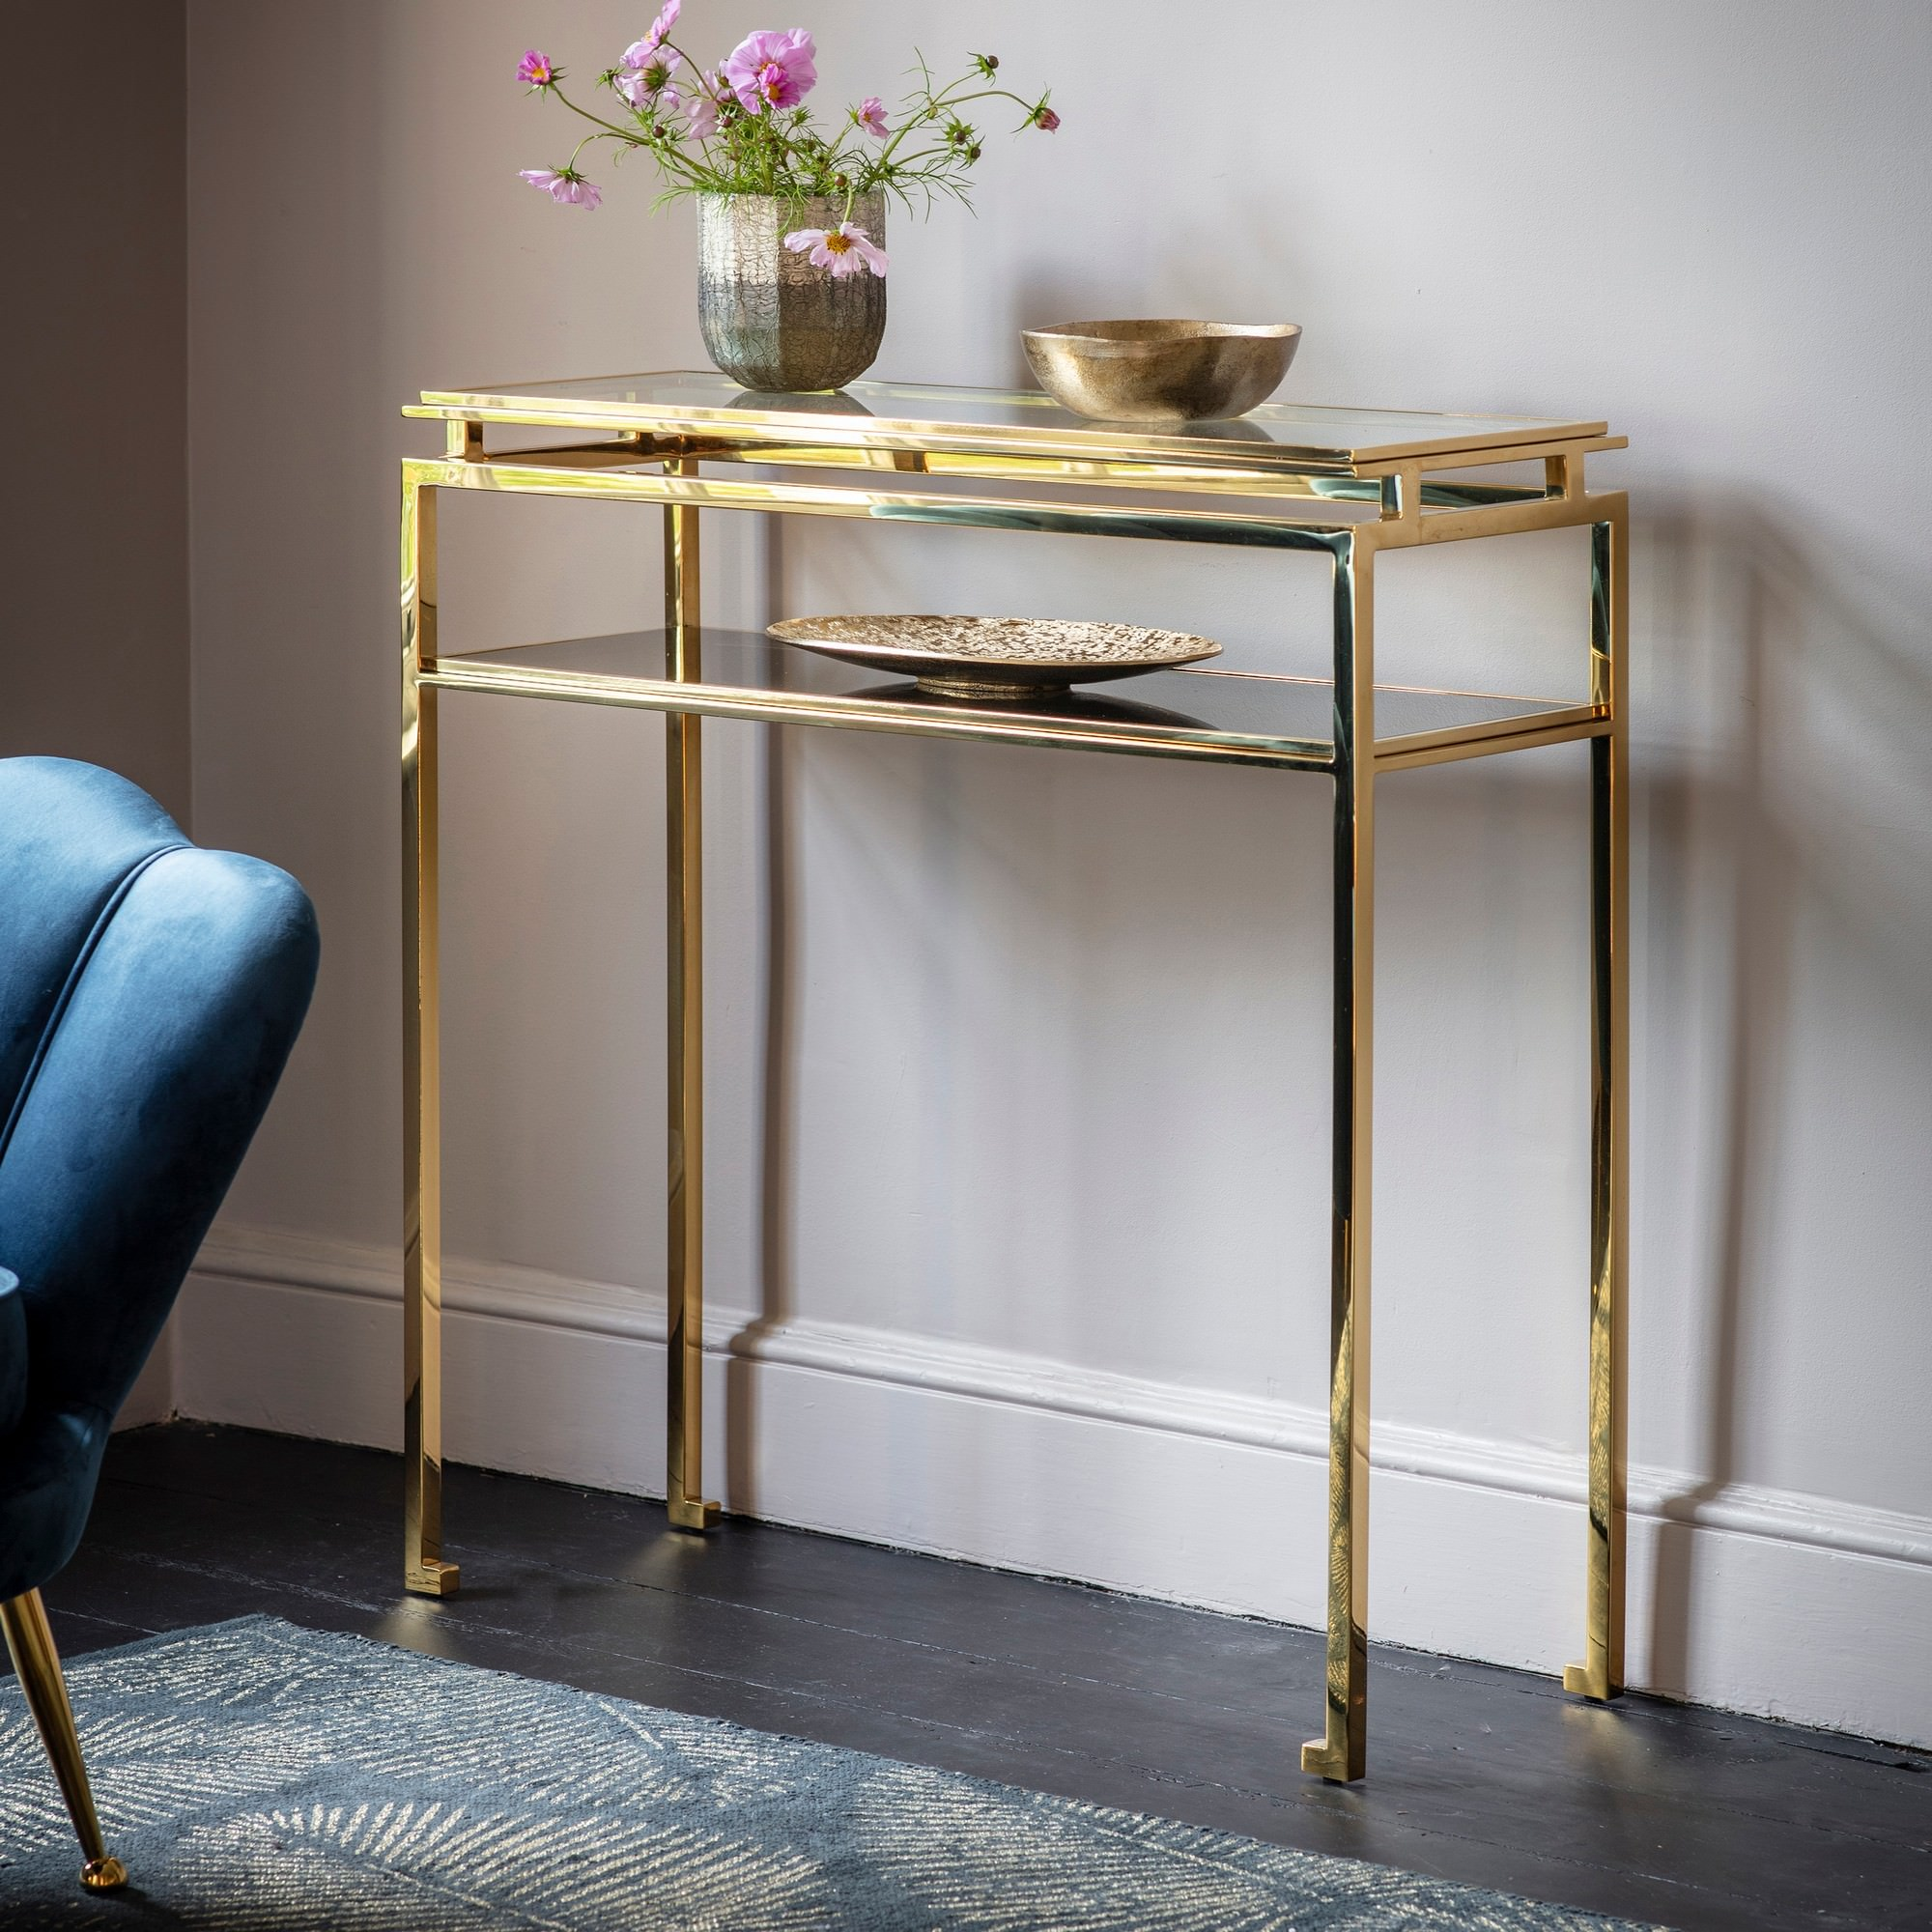 Charleton Stainless Steel Console Table, 90cm